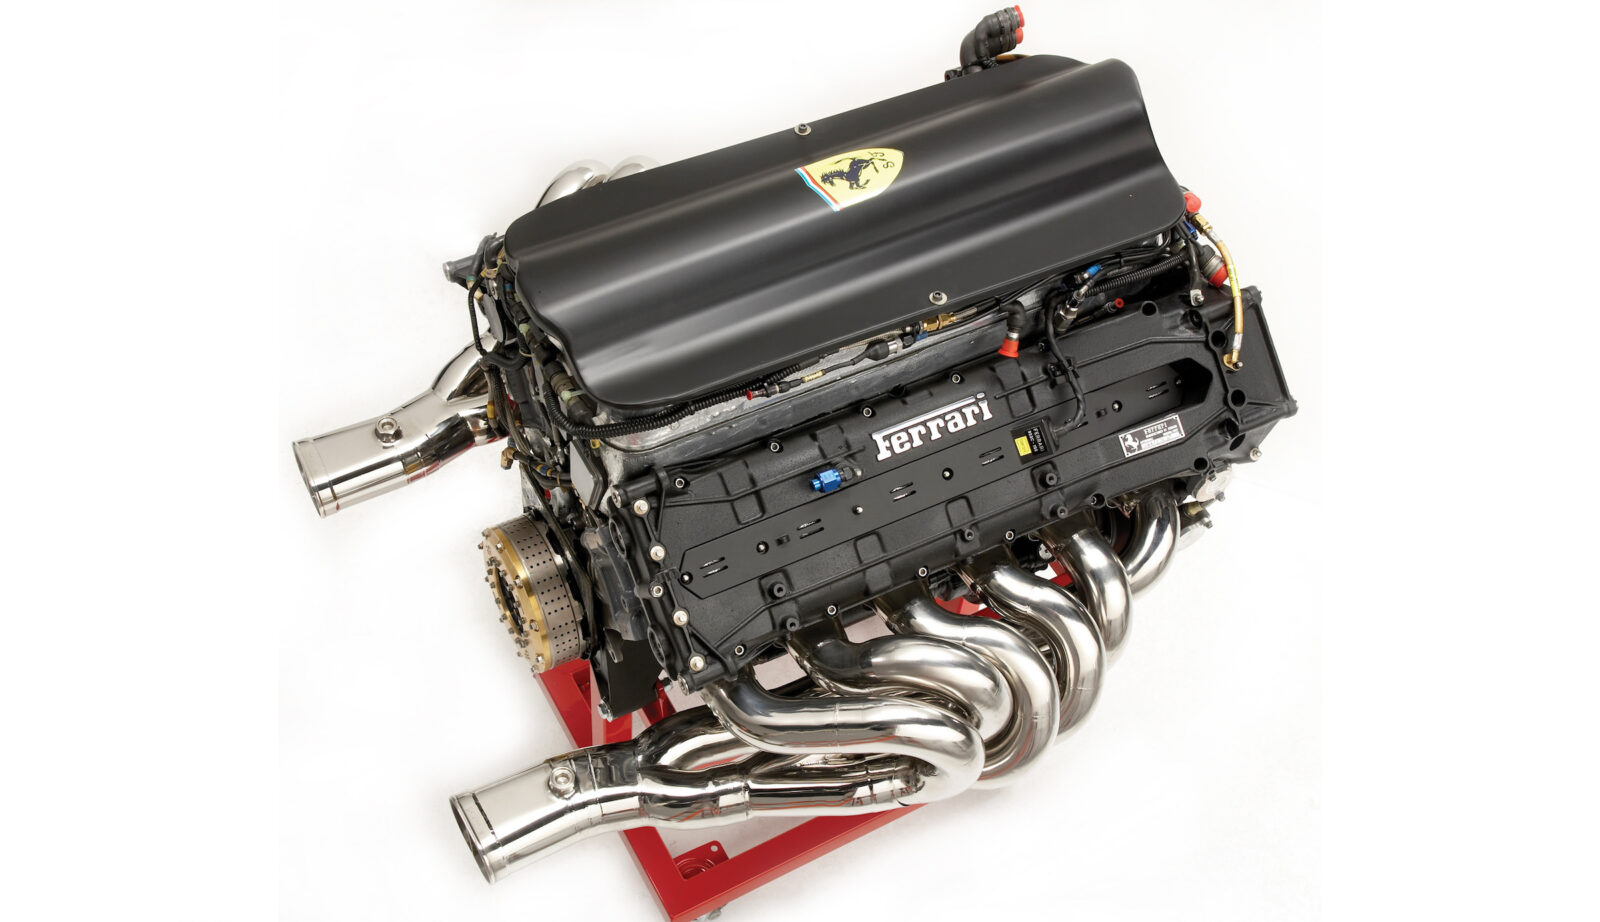 Ferrari Formula 1 engine